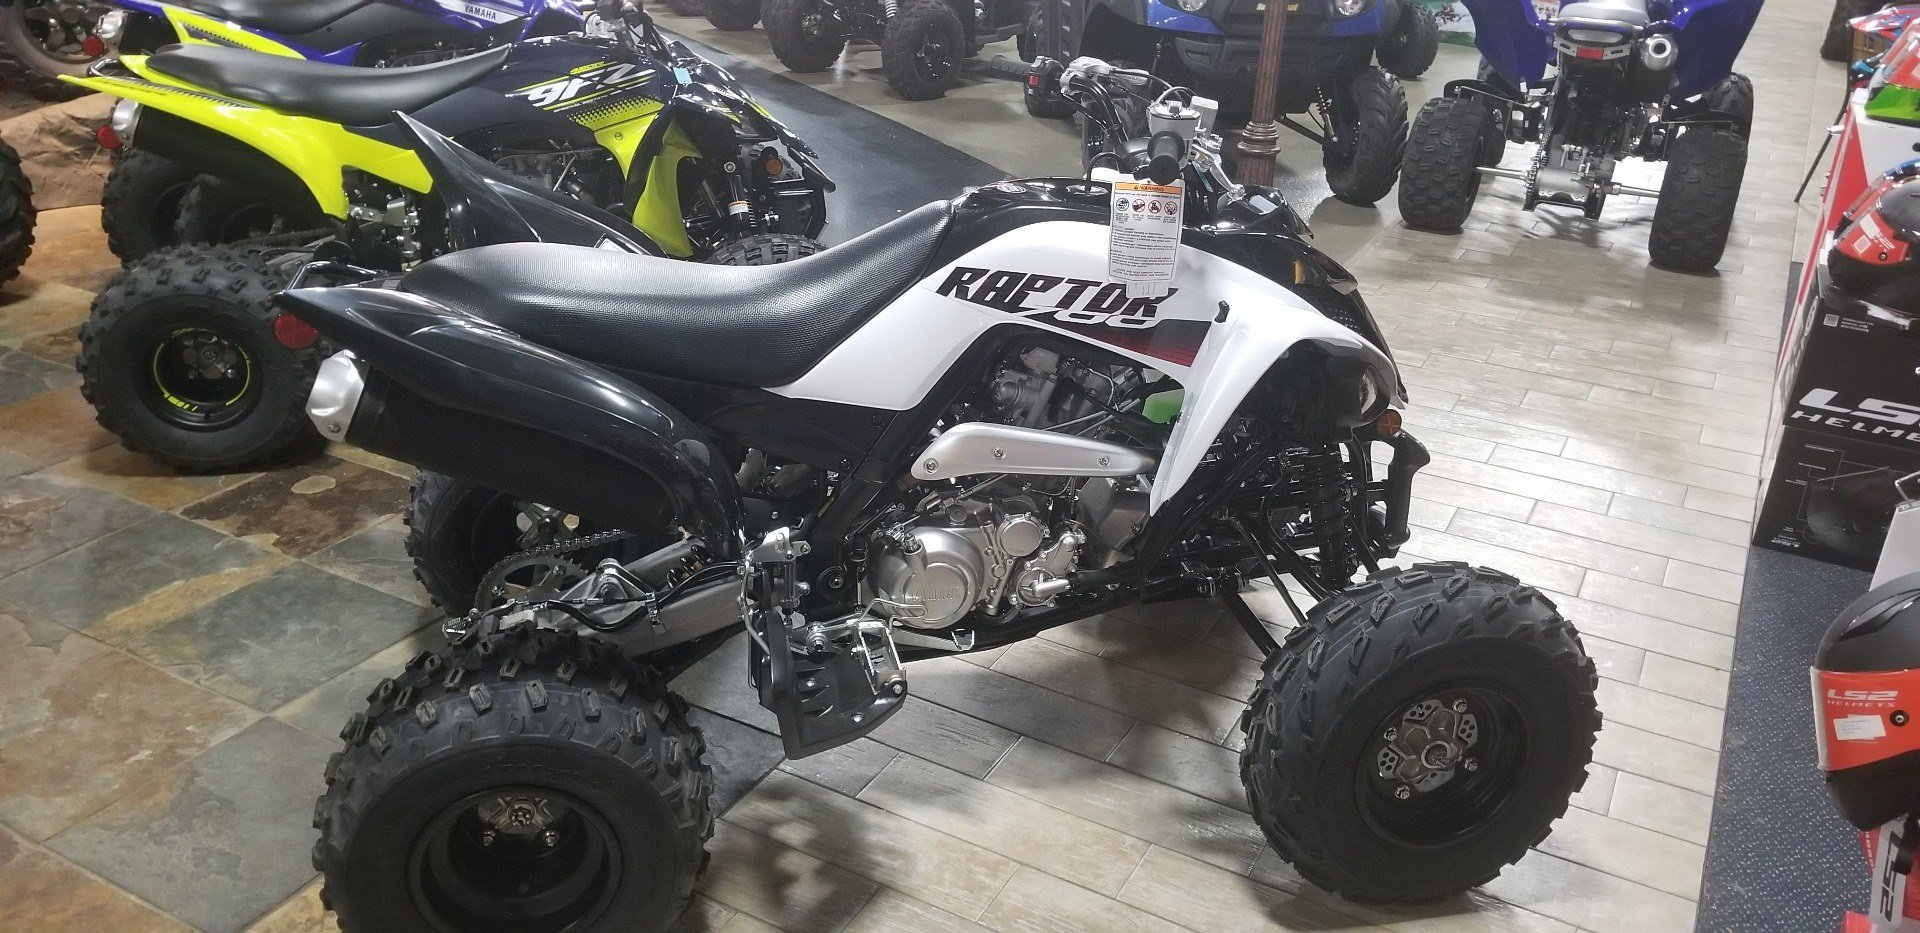 2020 Yamaha Raptor 700 in Dimondale, Michigan - Photo 7